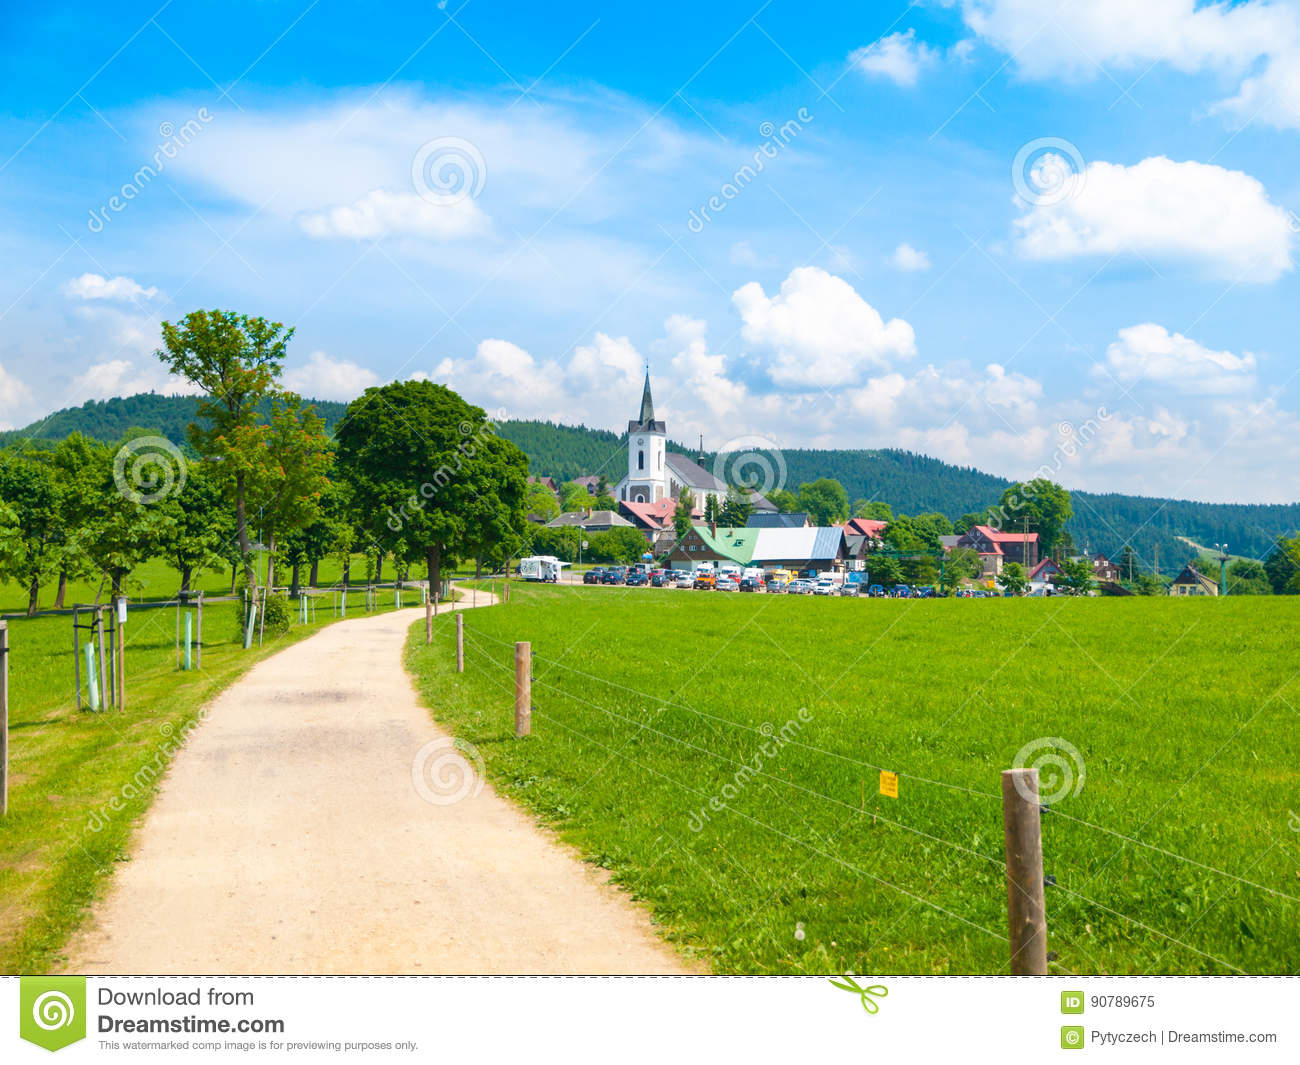 Summer landscape with lush green meadow, country road and white rural church. Prichovice, Northern Bohemia, Czech